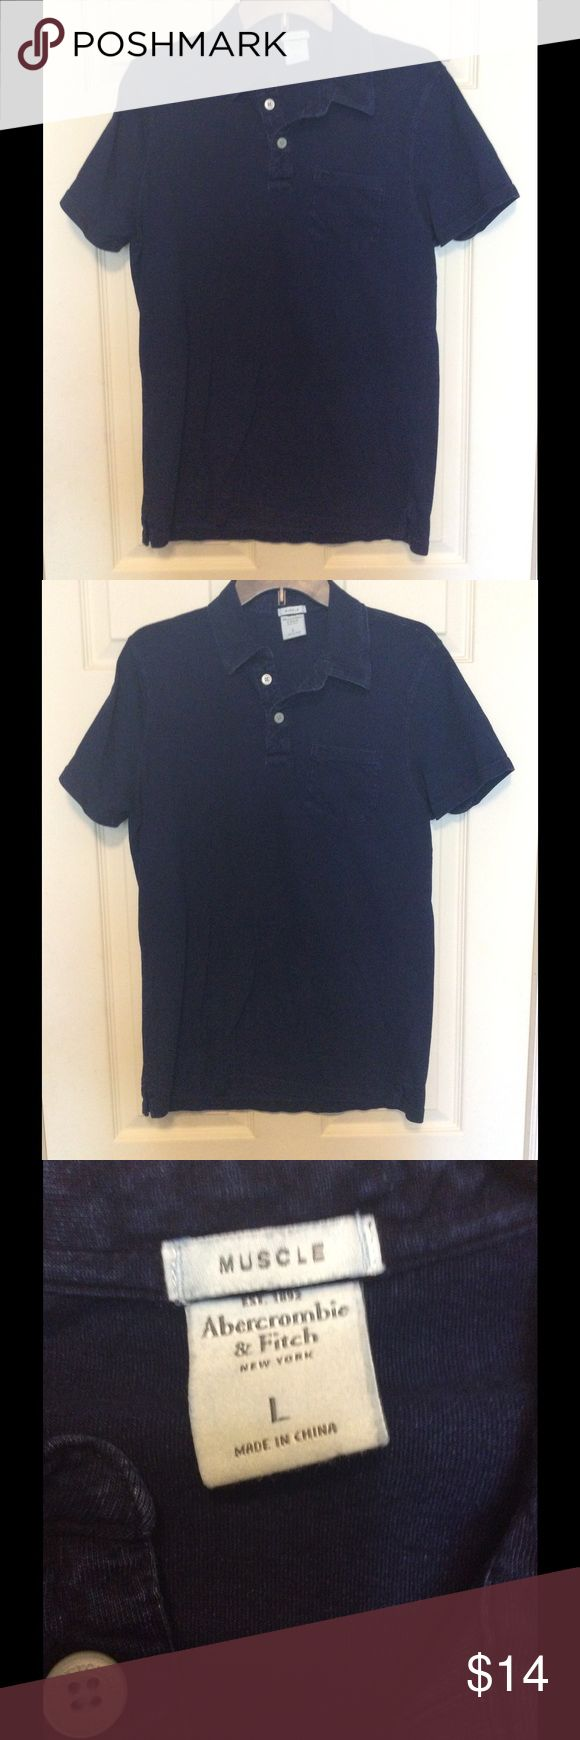 Abercrombie Men's Casual Shirt Abercrombie men's casual short sleeve shirt. Size is large.  This shirt is in very good condition.  Color is dark blue.  Bundle to save on shipping. Abercrombie & Fitch Shirts Polos